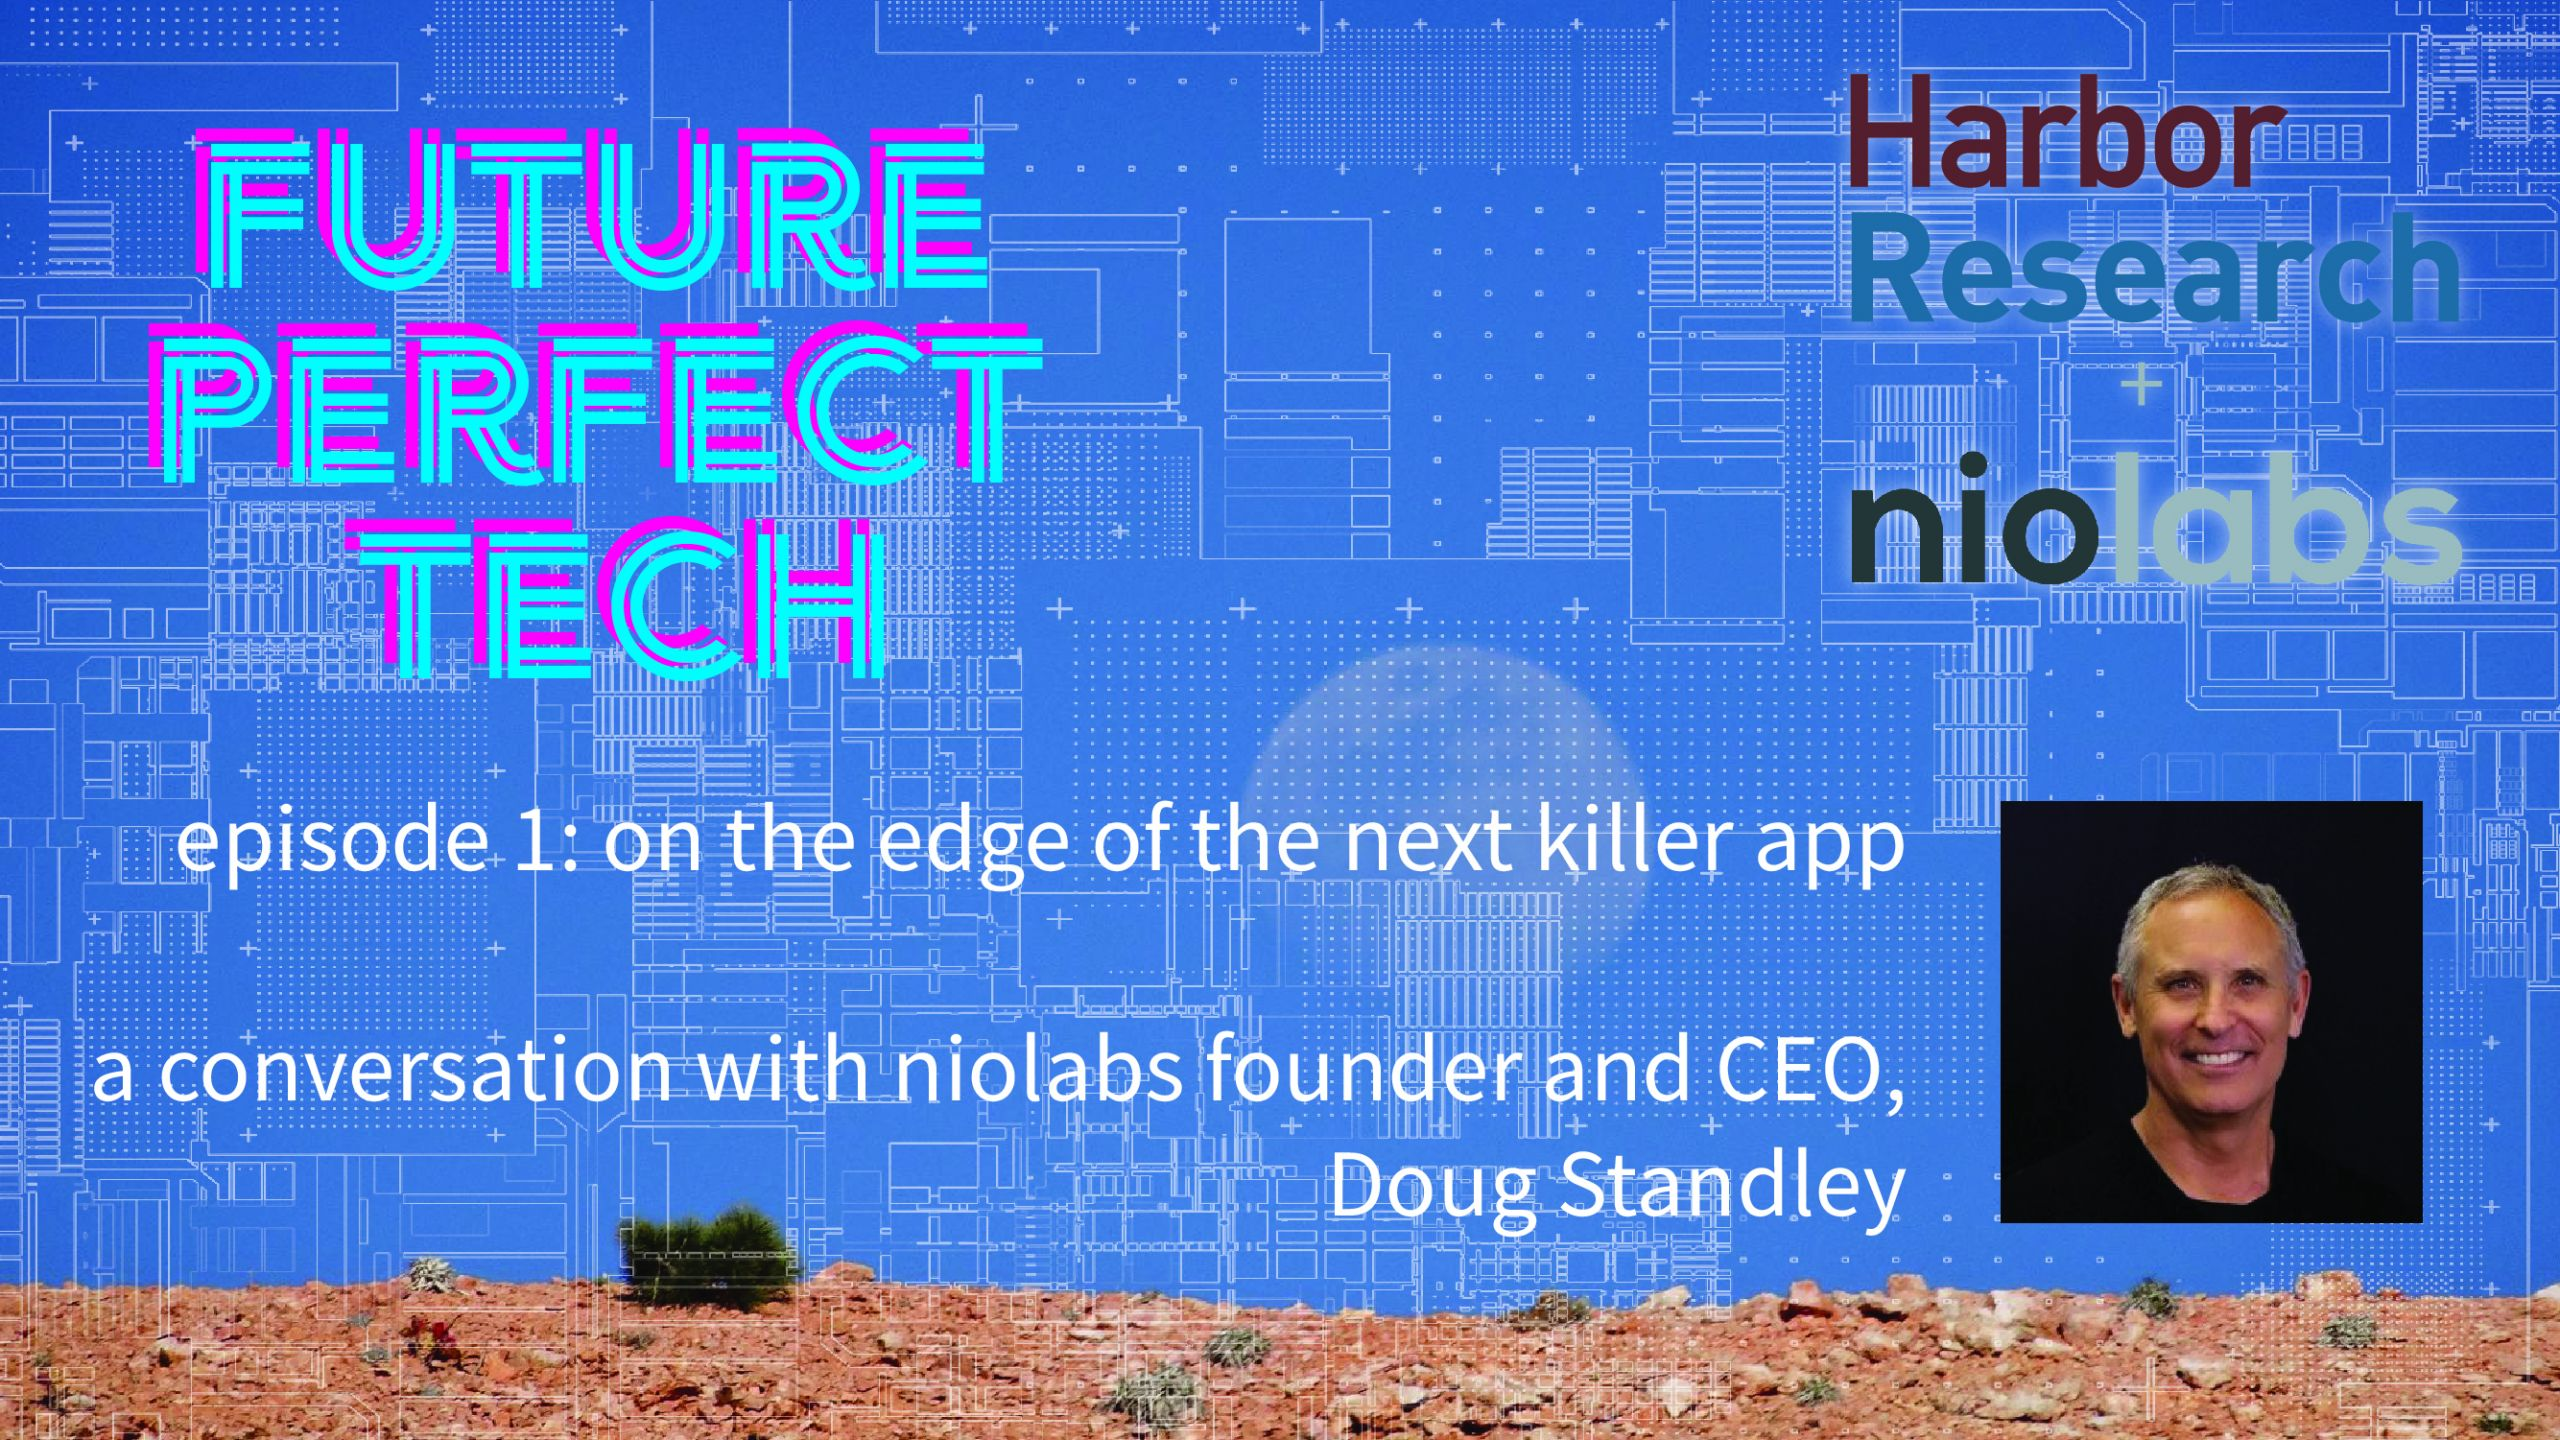 Future Perfect Tech, Episode 1: On the Edge of the Next Killer App